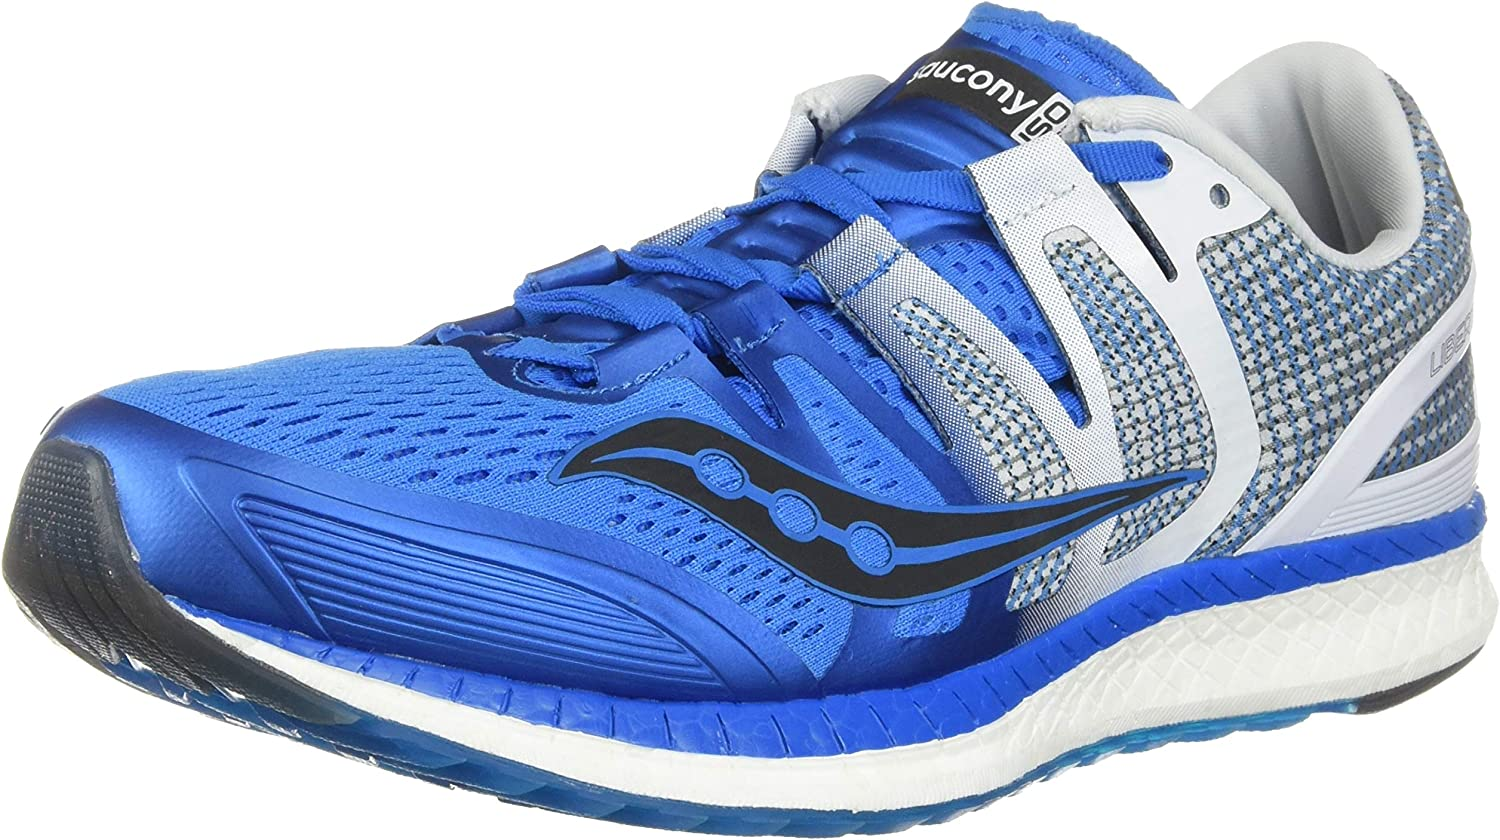 Saucony Men s Fitness Shoes